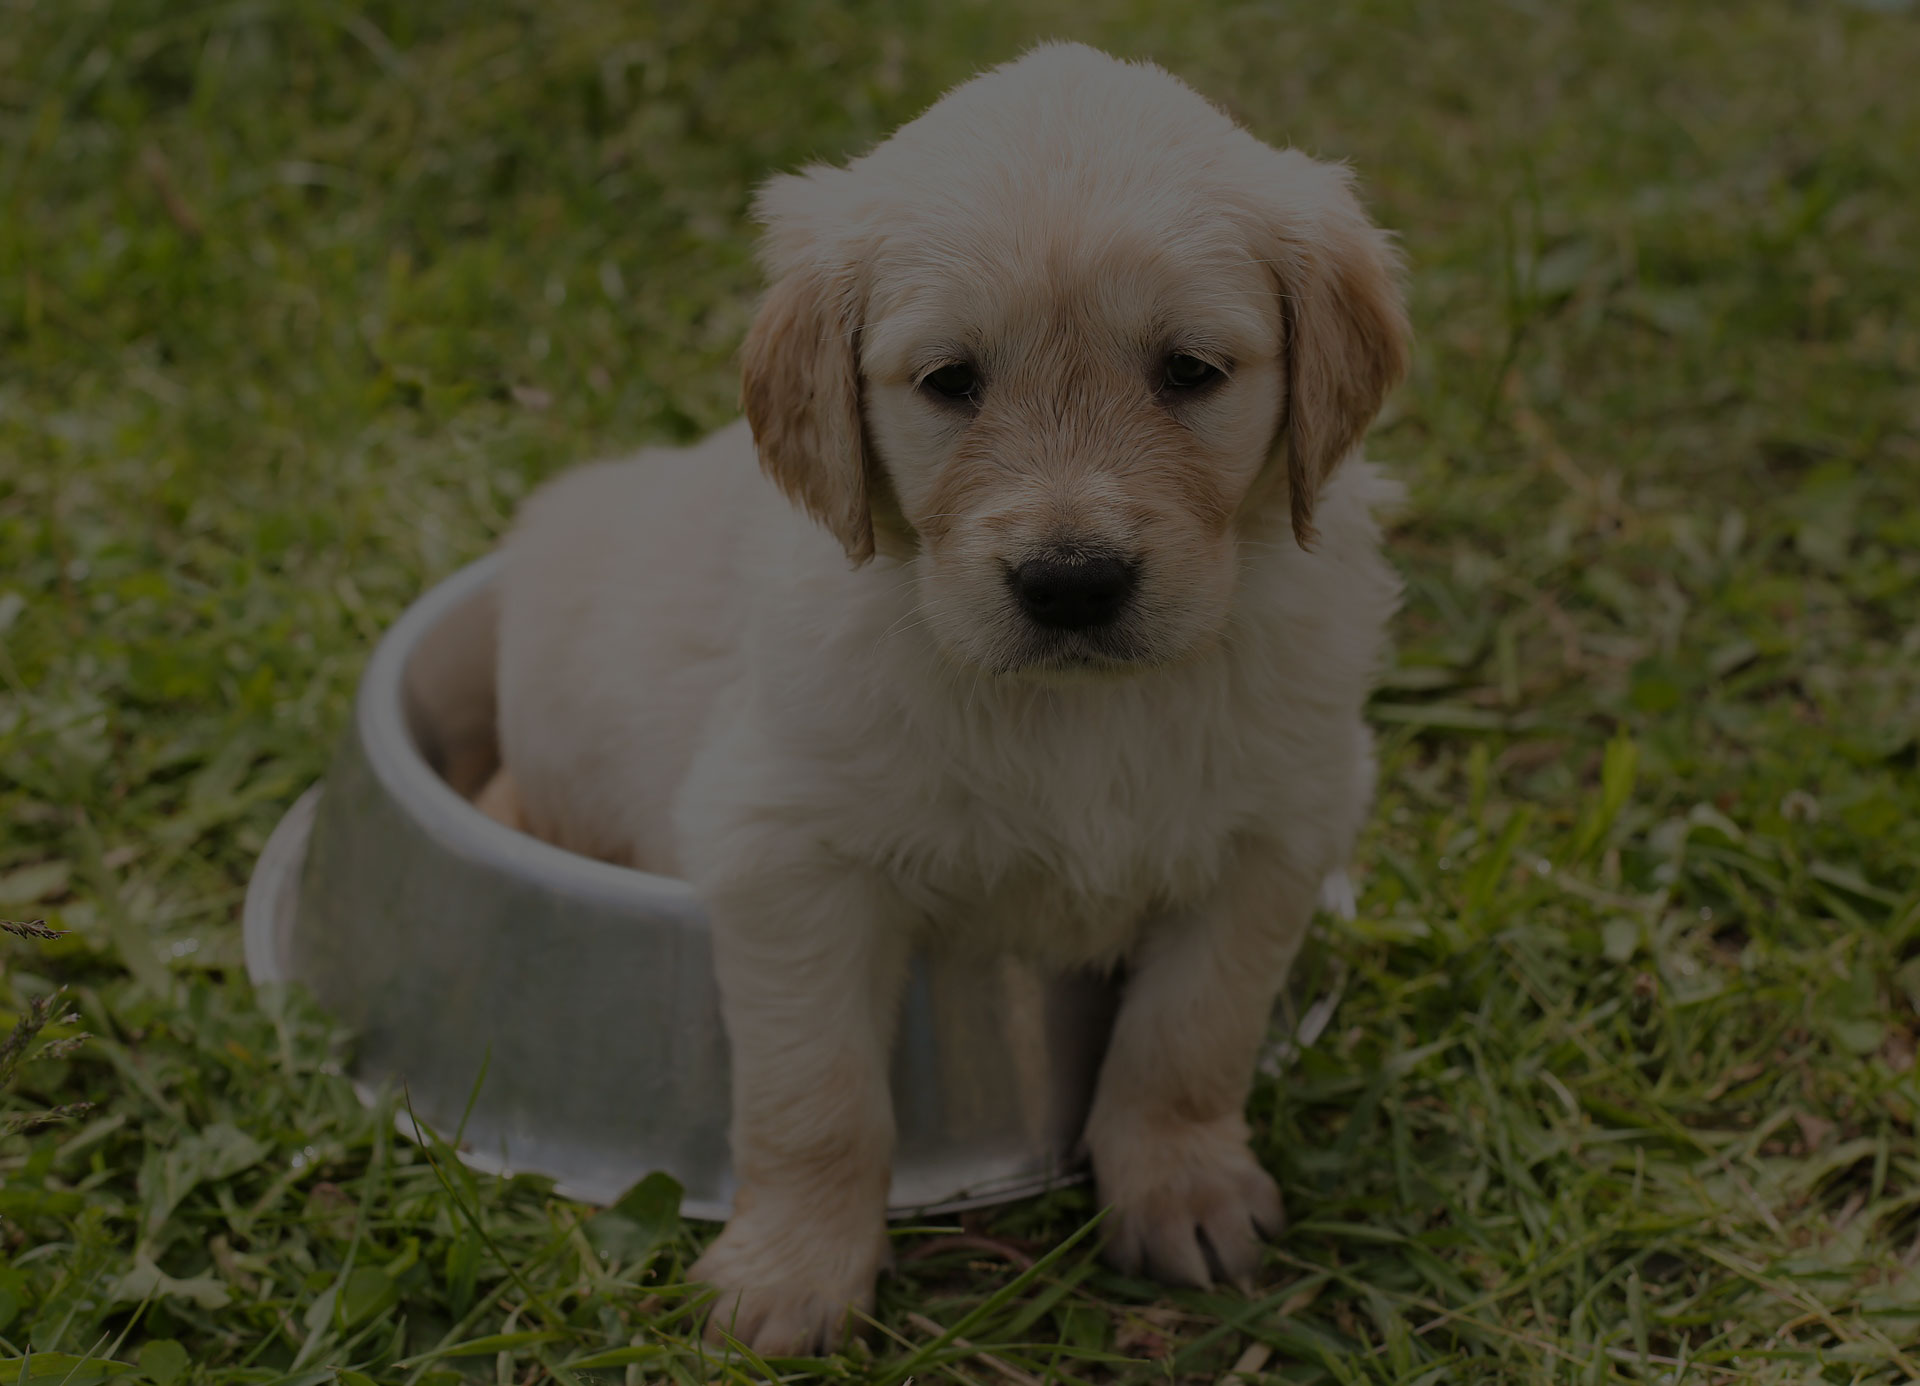 Puppy sitted on food bowl on grass